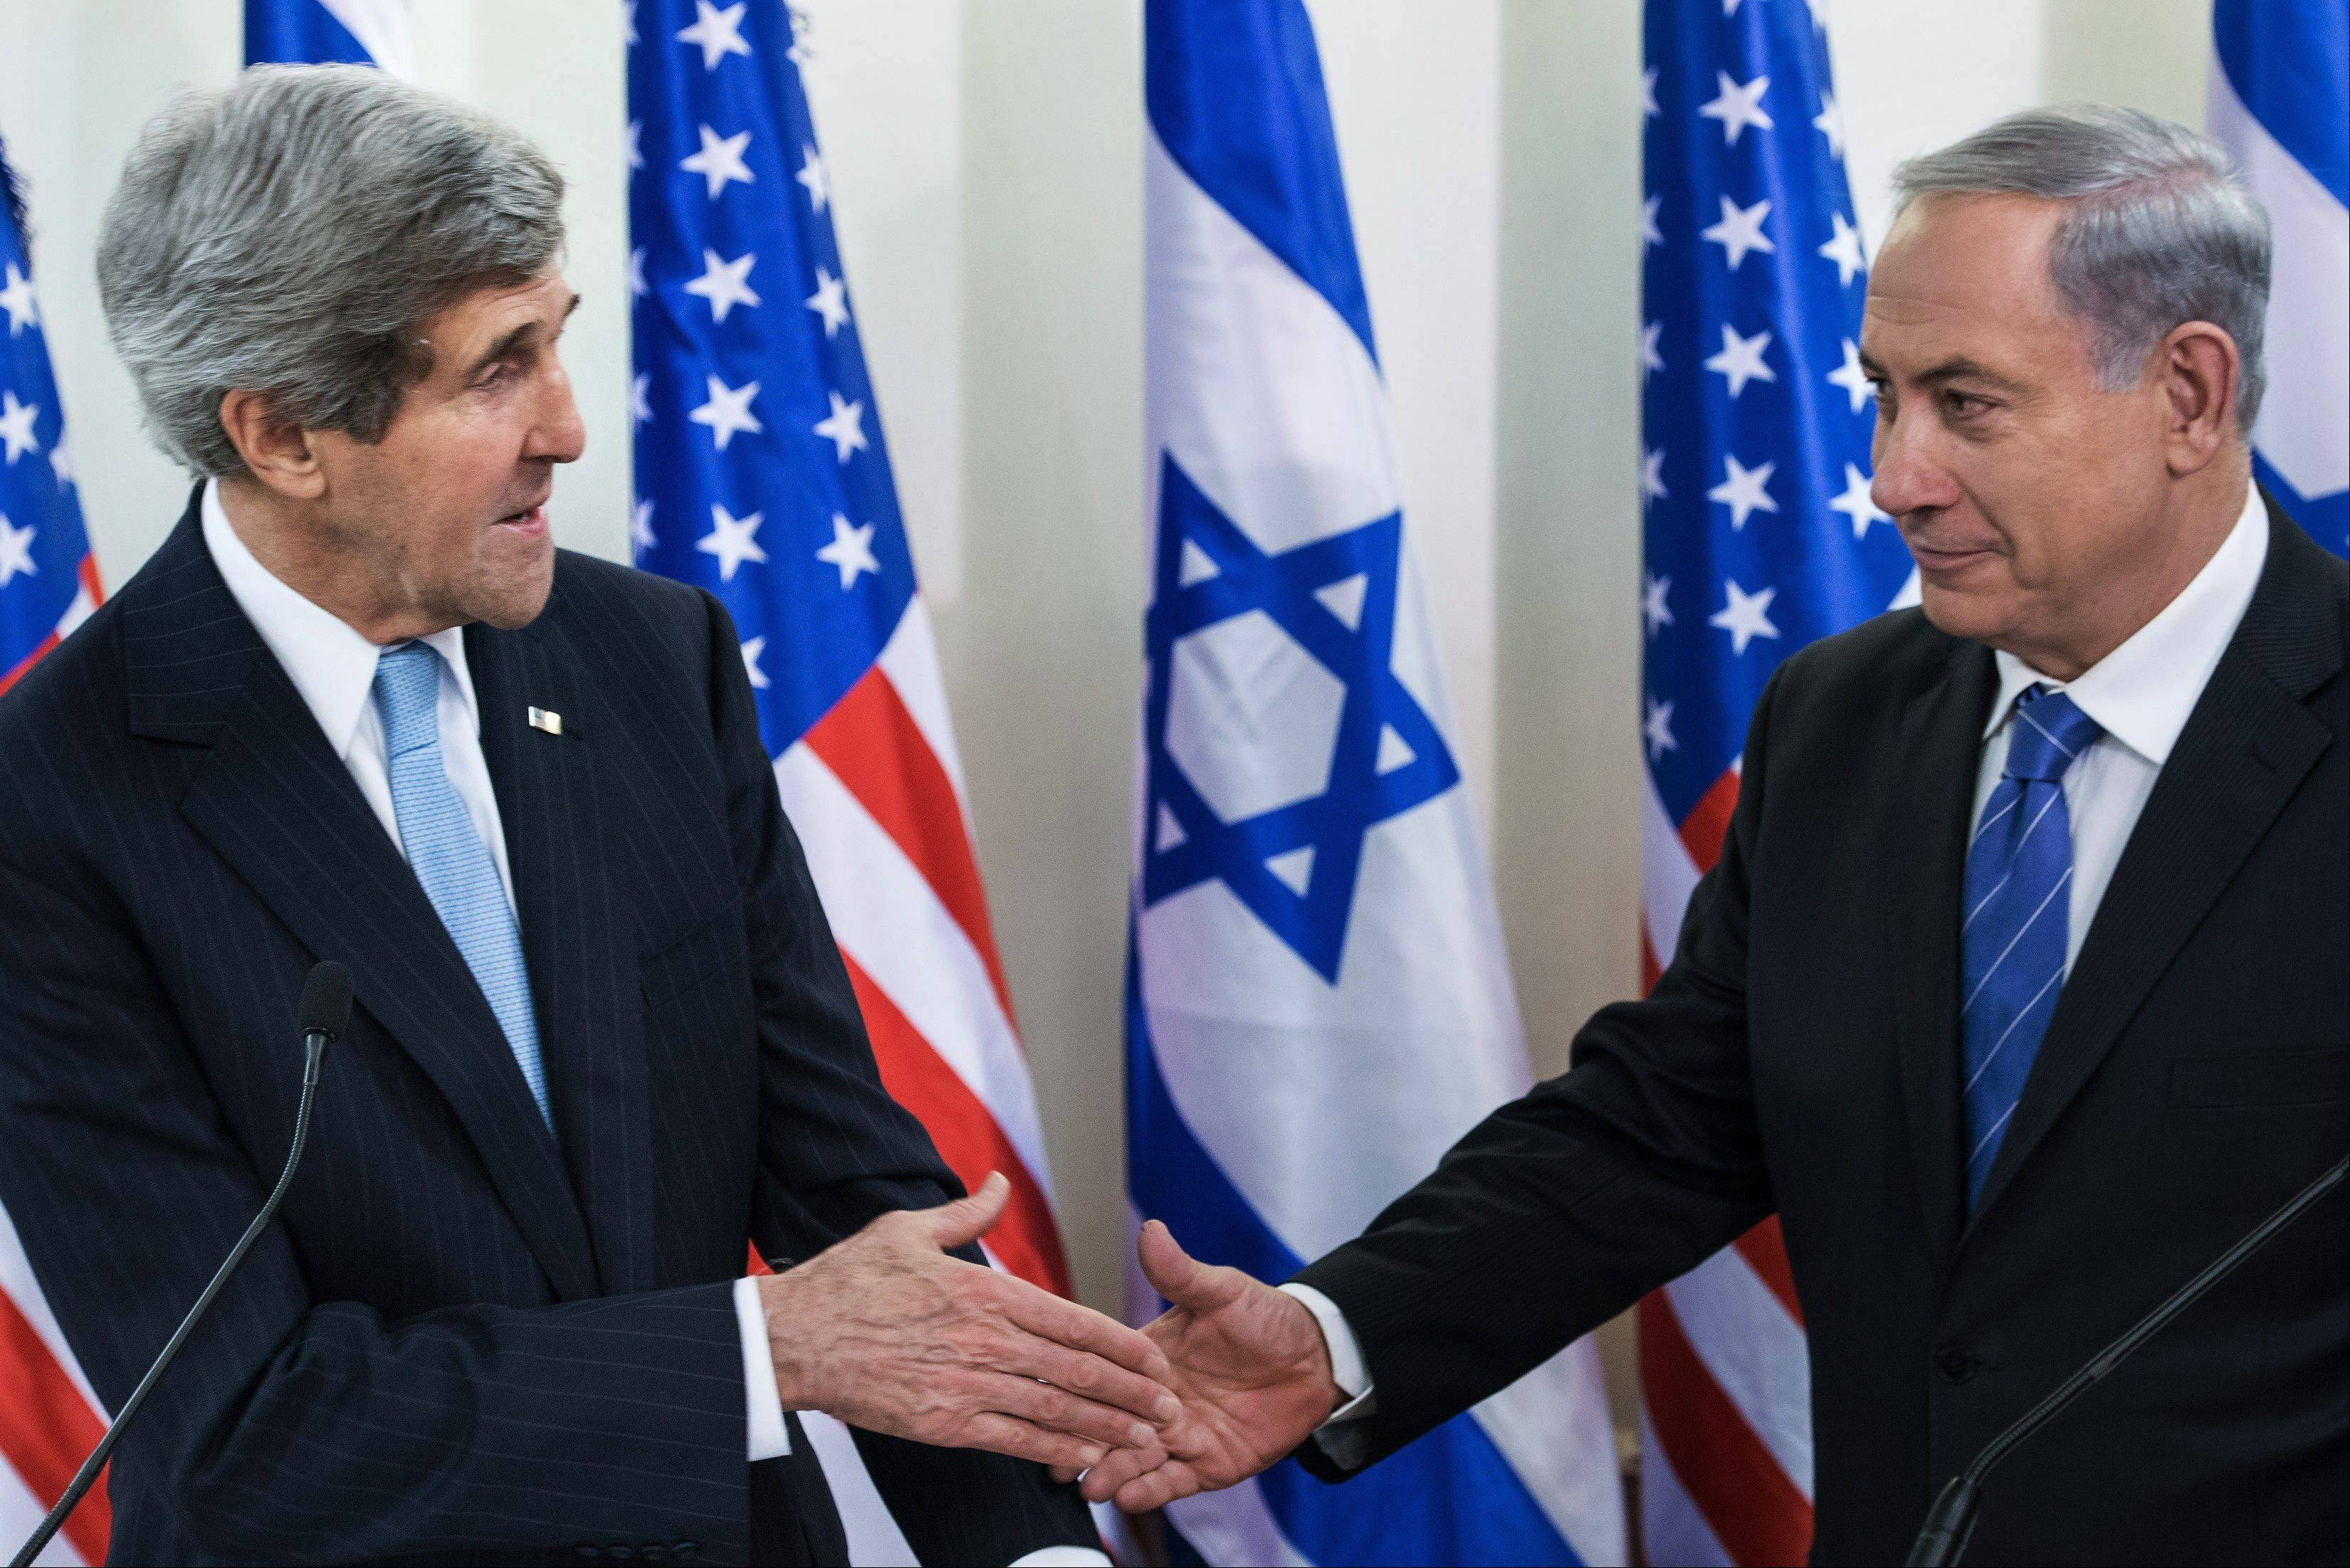 Secretary of State John Kerry, left, and Israeli Prime Minister Benjamin Netanyahu shake hands before a meeting at the prime minister's office in Jerusalem Thursday. Kerry arrived in Israel to broker Mideast peace talks that are entering a difficult phase aimed at reaching a two-state solution between the Israelis and Palestinians.